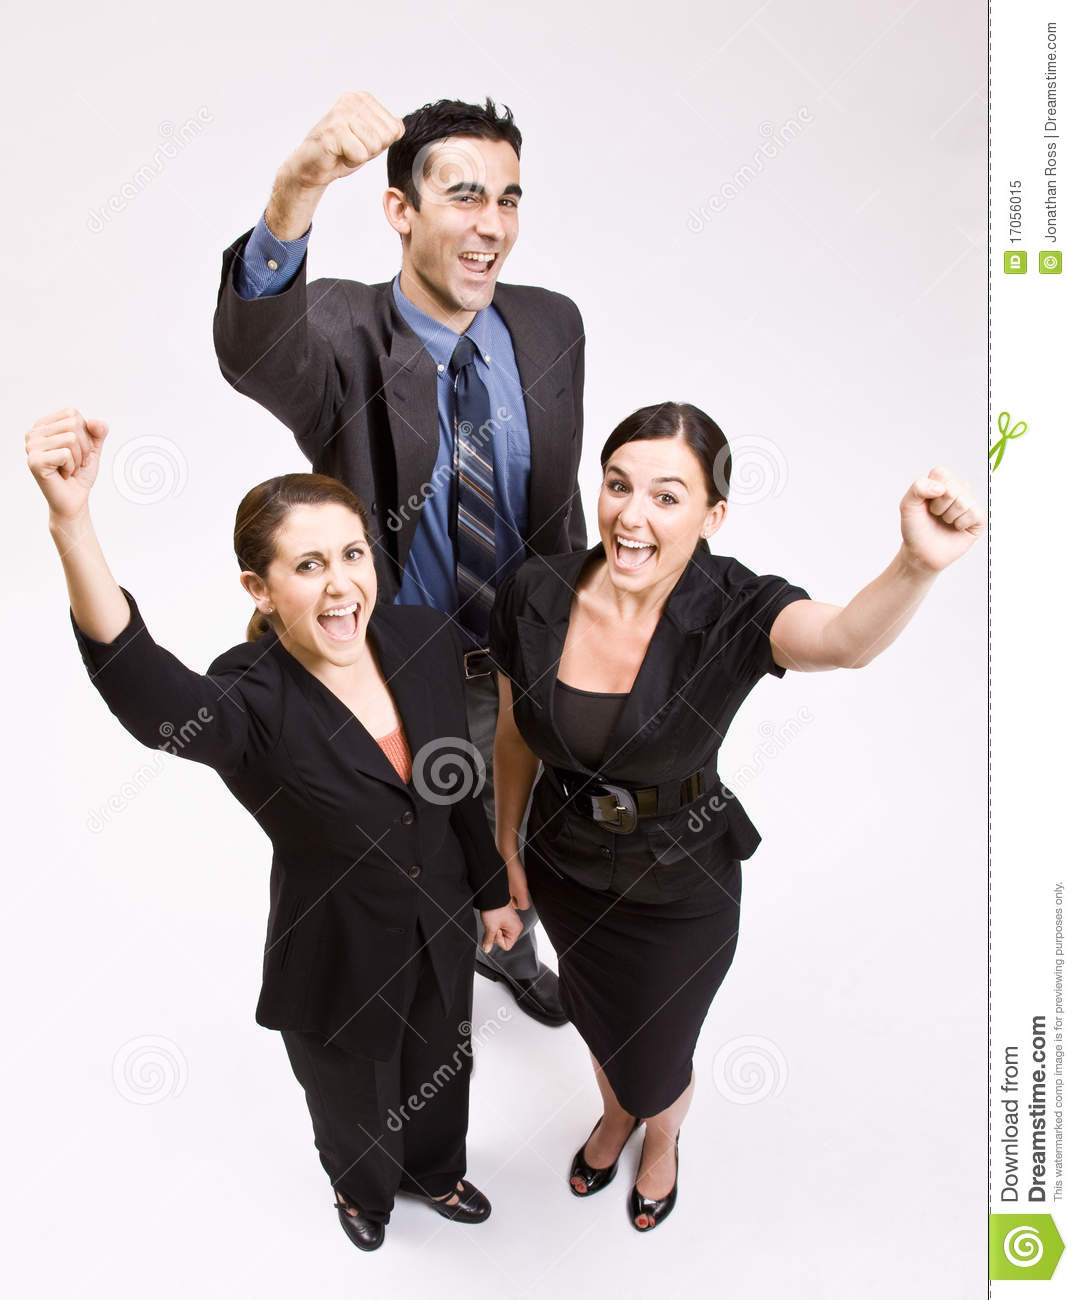 Cheering People Stock Images